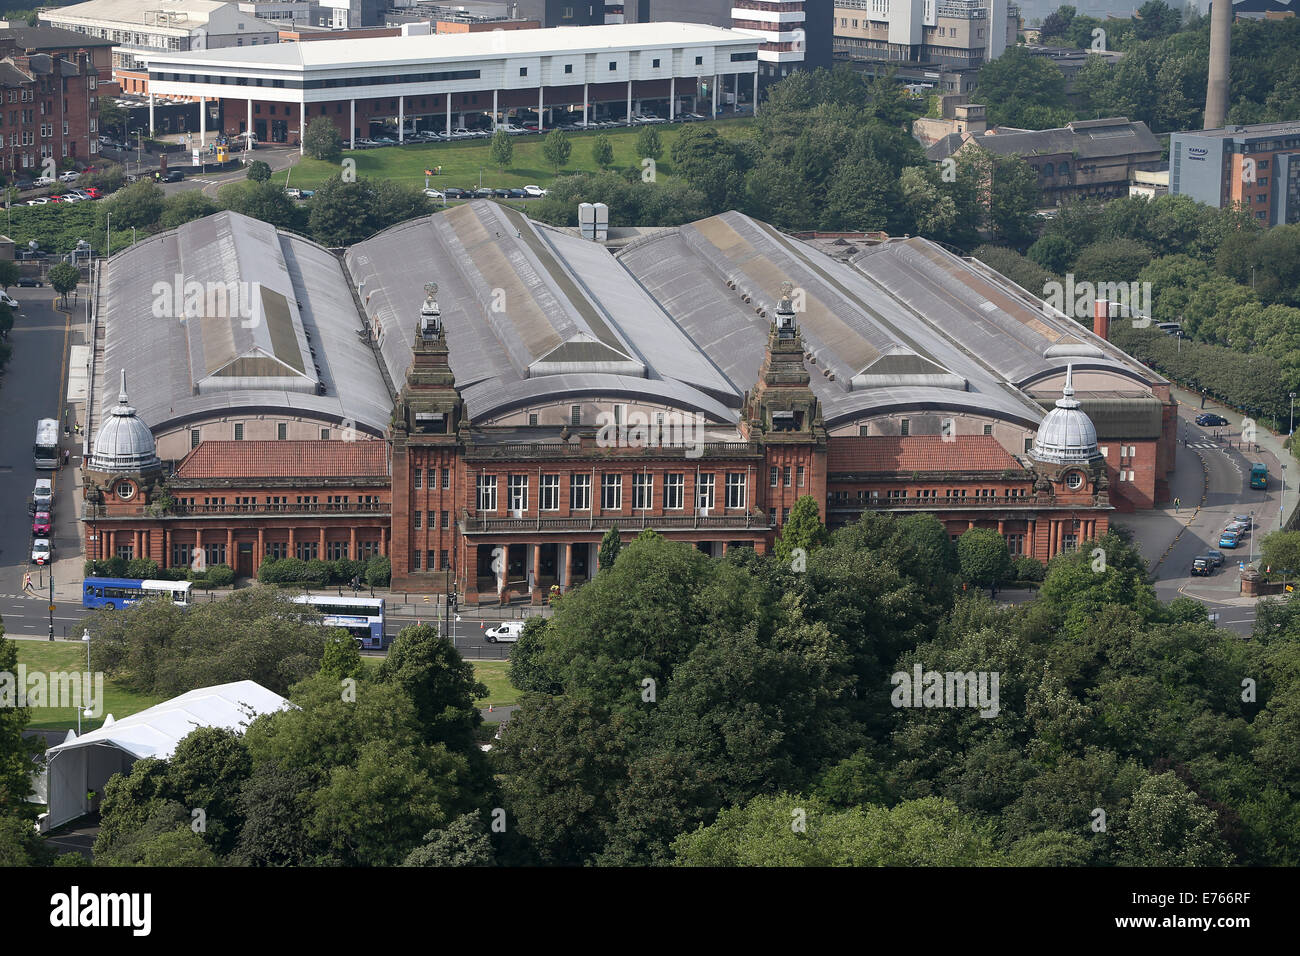 Aerial view of Kelvin Hall Glasgow - Stock Image